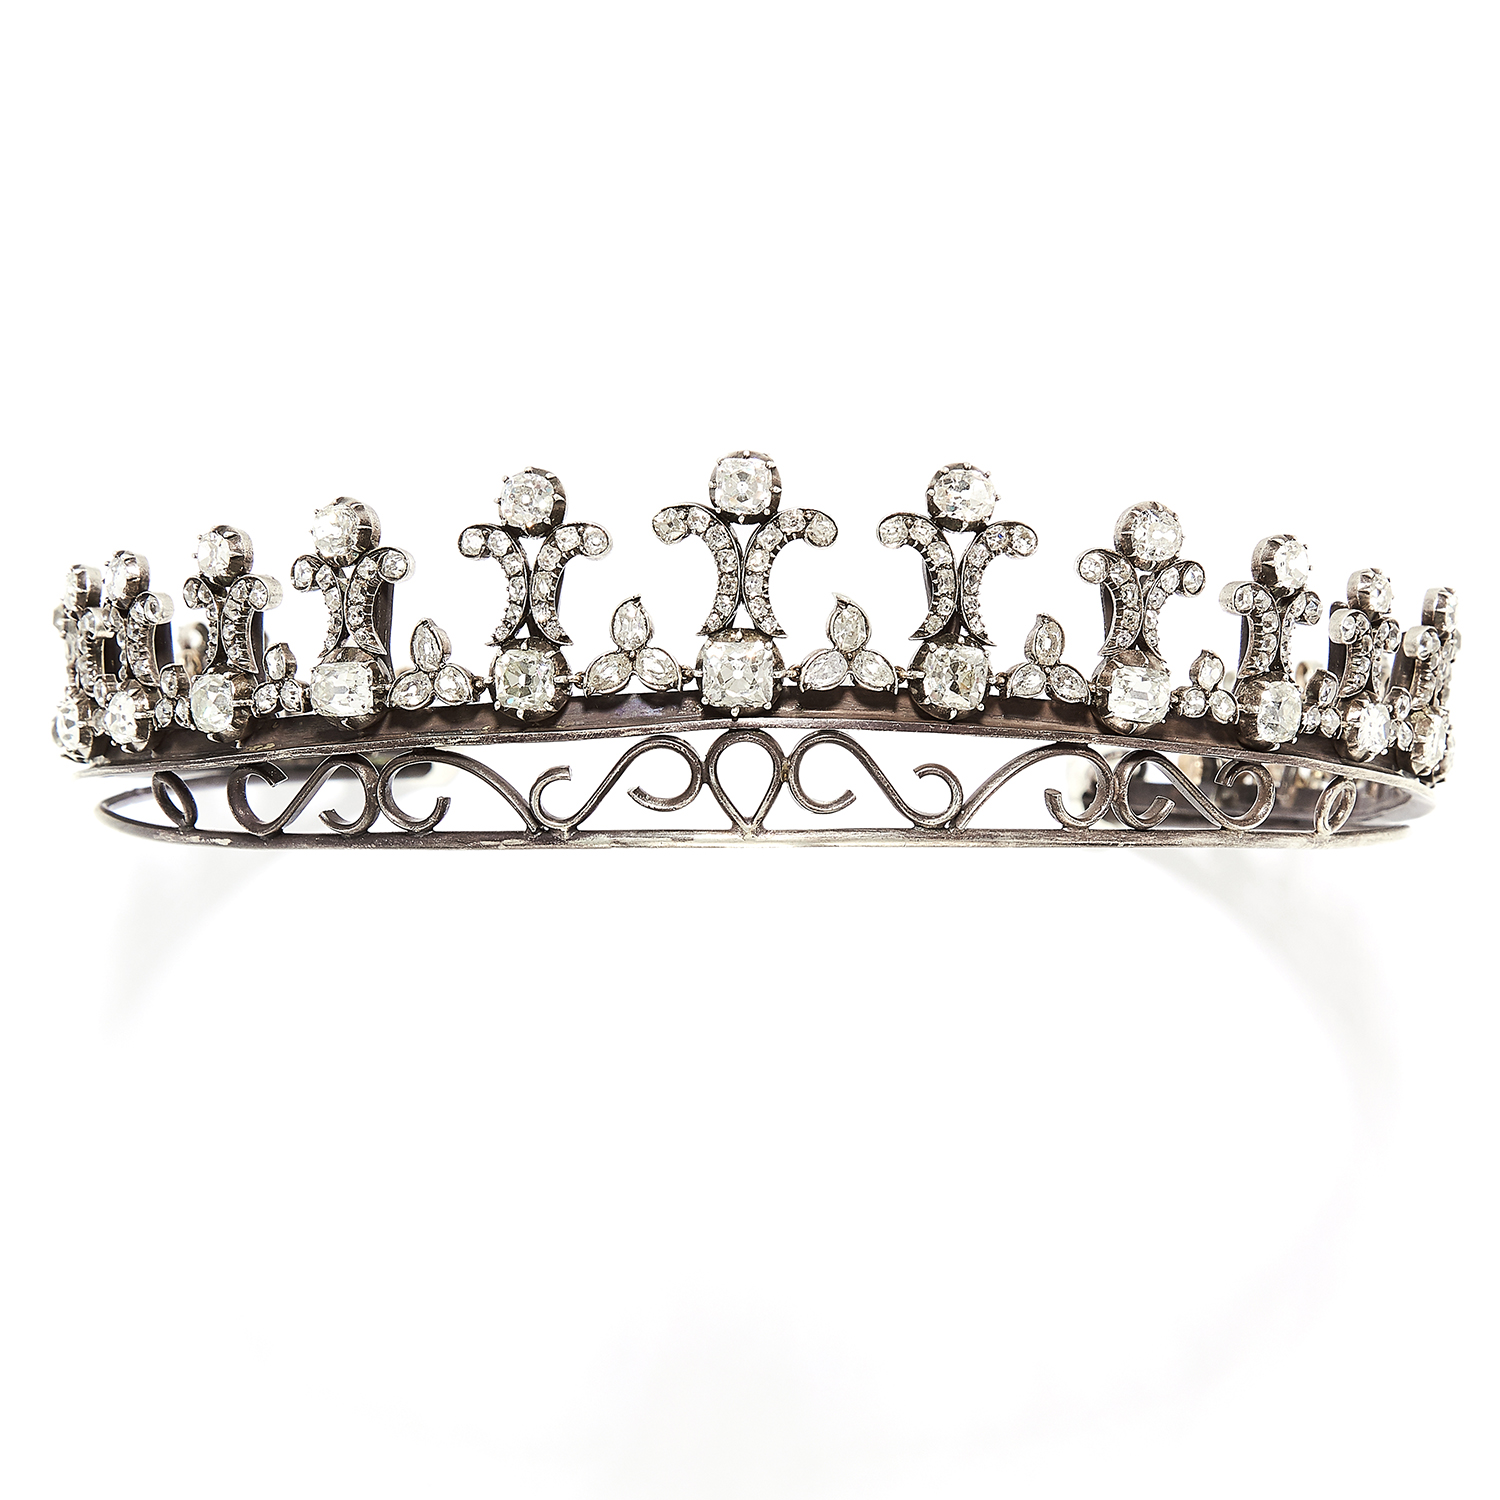 ANTIQUE 60.00 CARAT DIAMOND TIARA / RIVIERA NECKLACE, CIRCA 1870 in gold and silver, designed as a